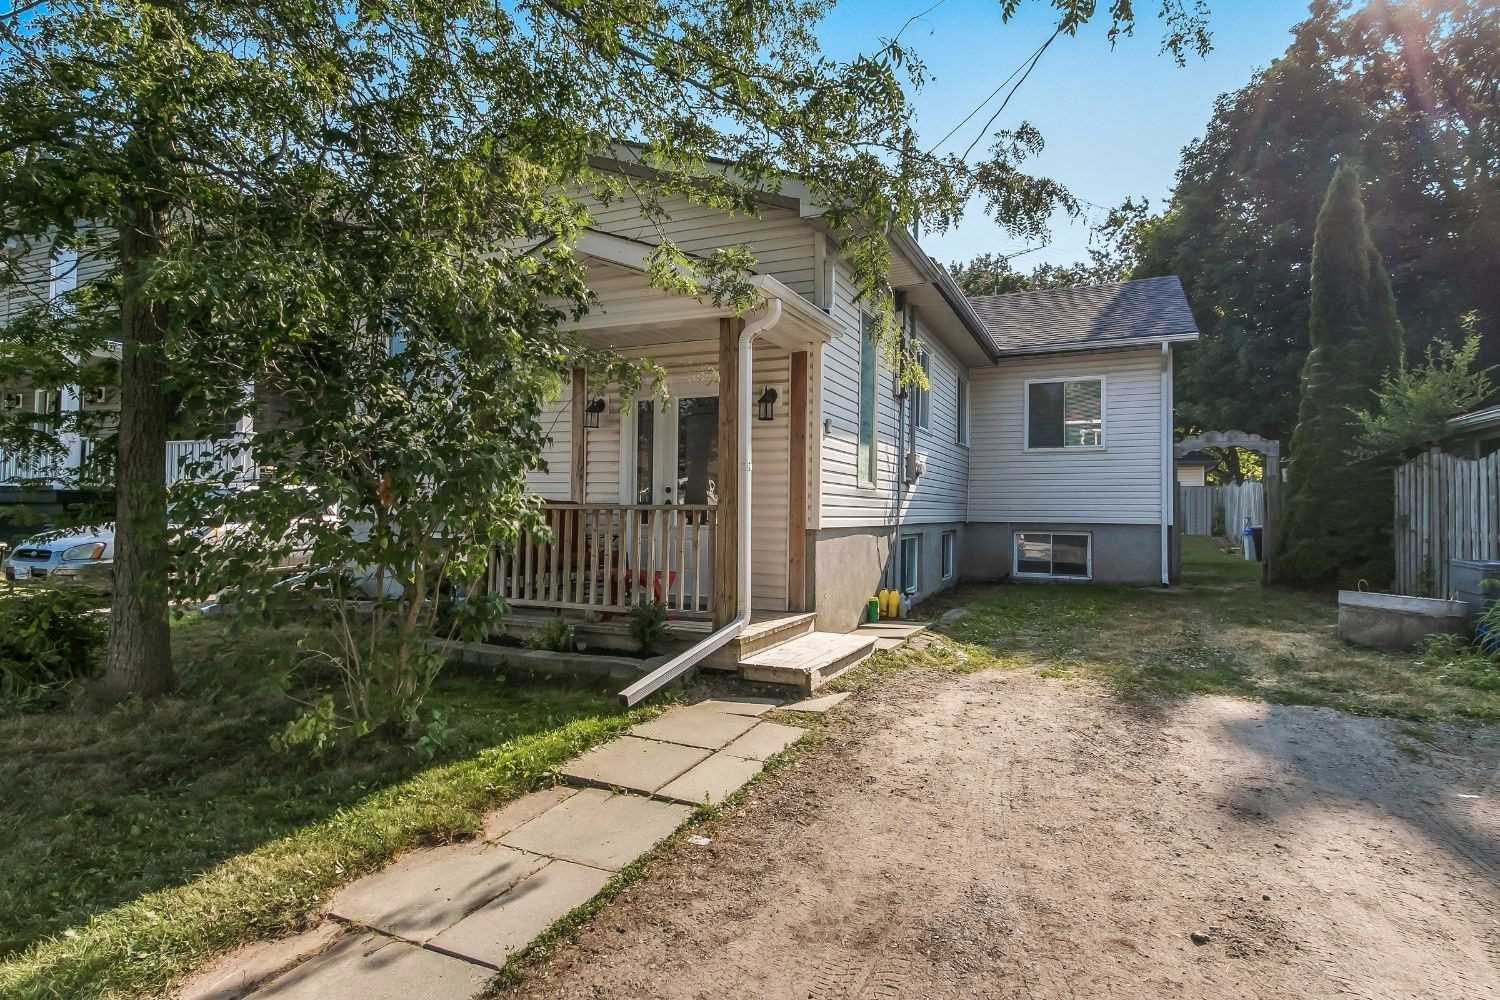 pictures of house for sale MLS: E4531957 located at 10 Marina Dr, Scugog L0B1E0